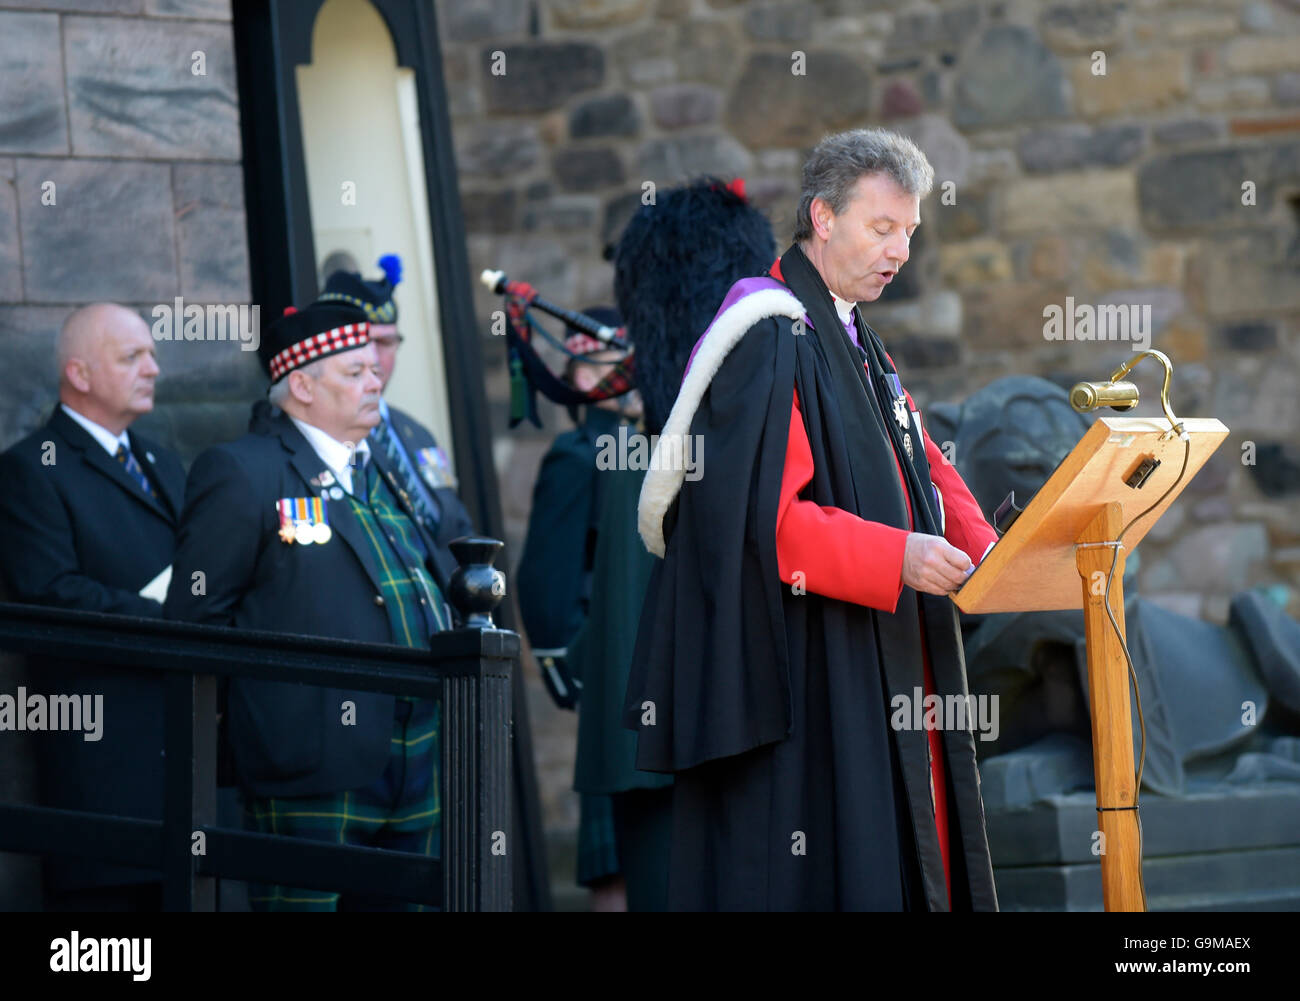 Reverend Neil Gardner of Cannongate Kirk speaks during a special service which followed an overnight vigil, at Edinburgh Stock Photo